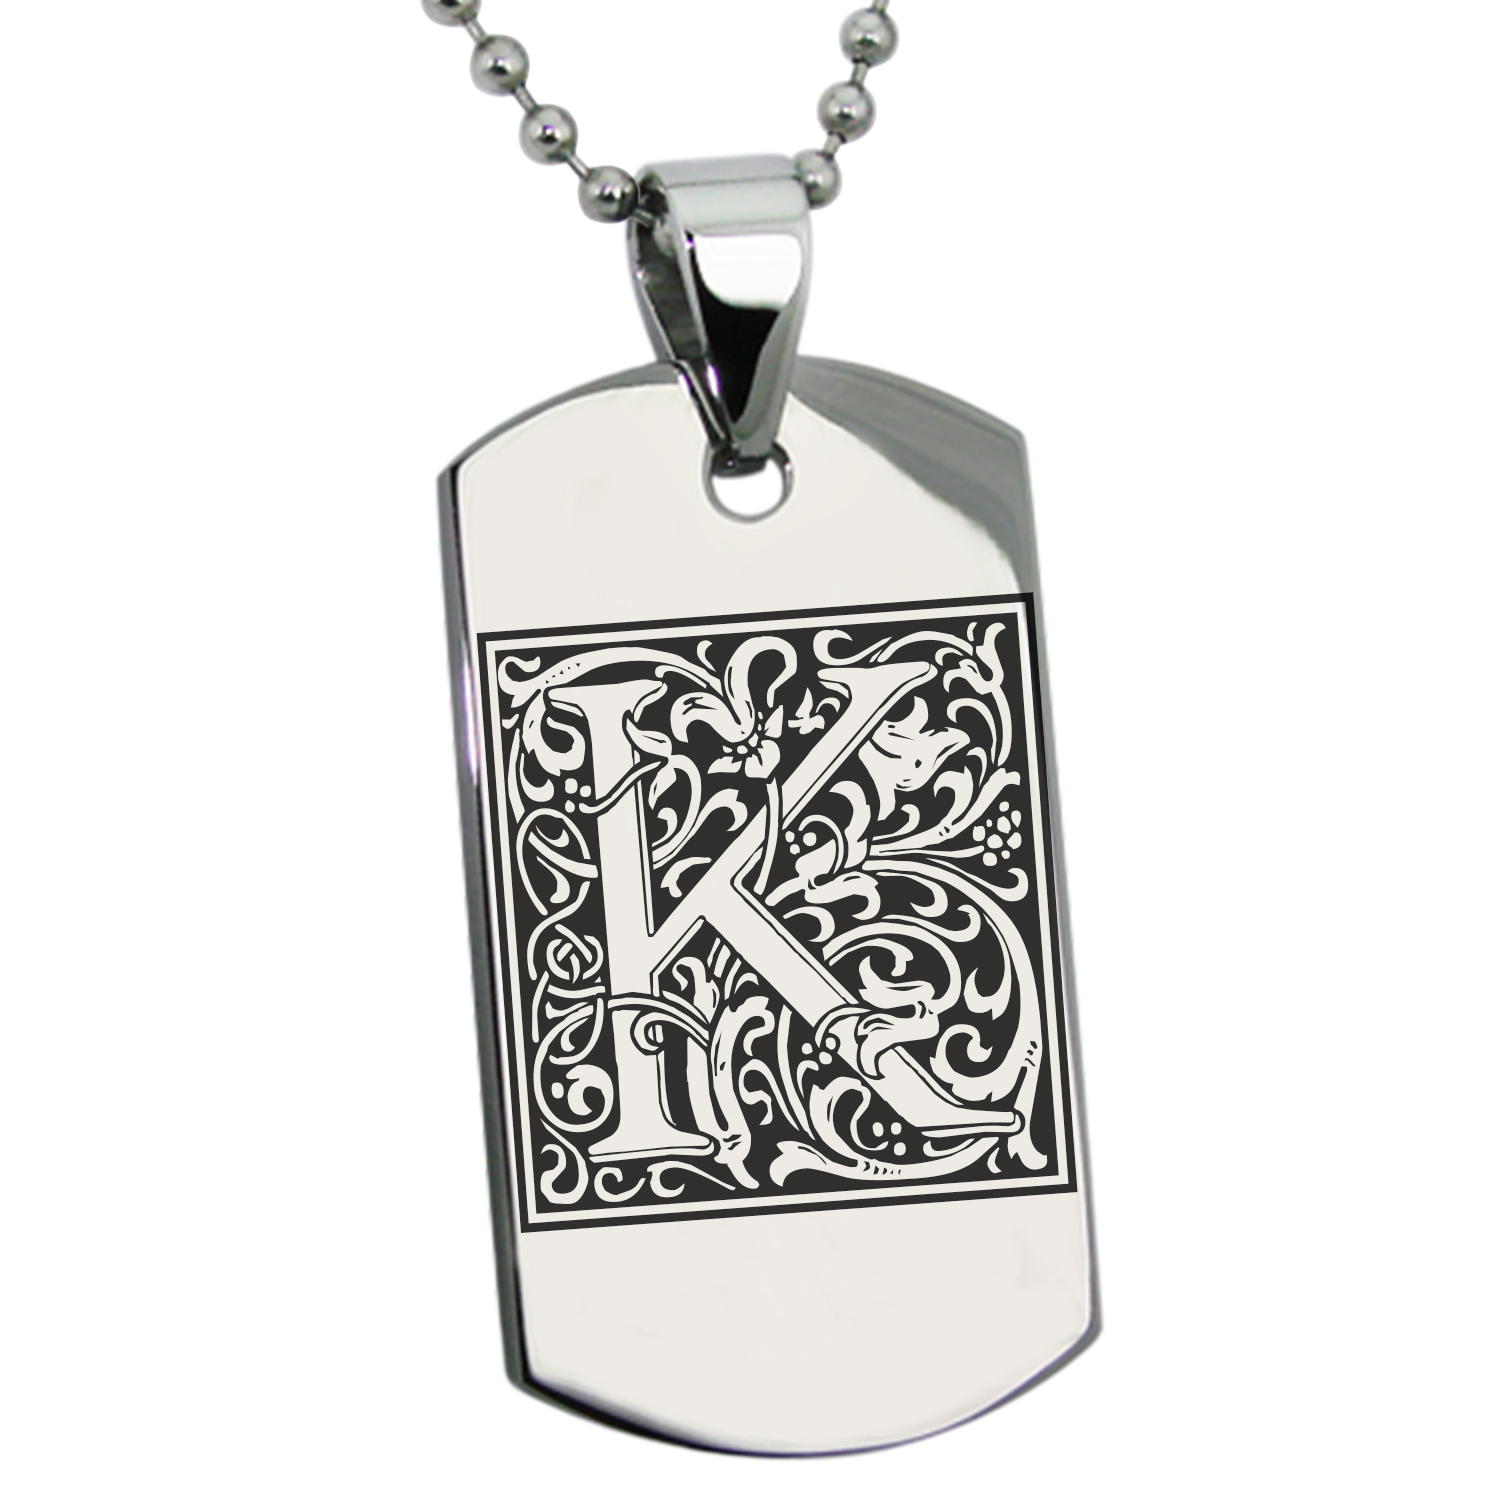 Stainless Steel Letter K Initial Floral Monogram Engraved Dog Tag Pendant